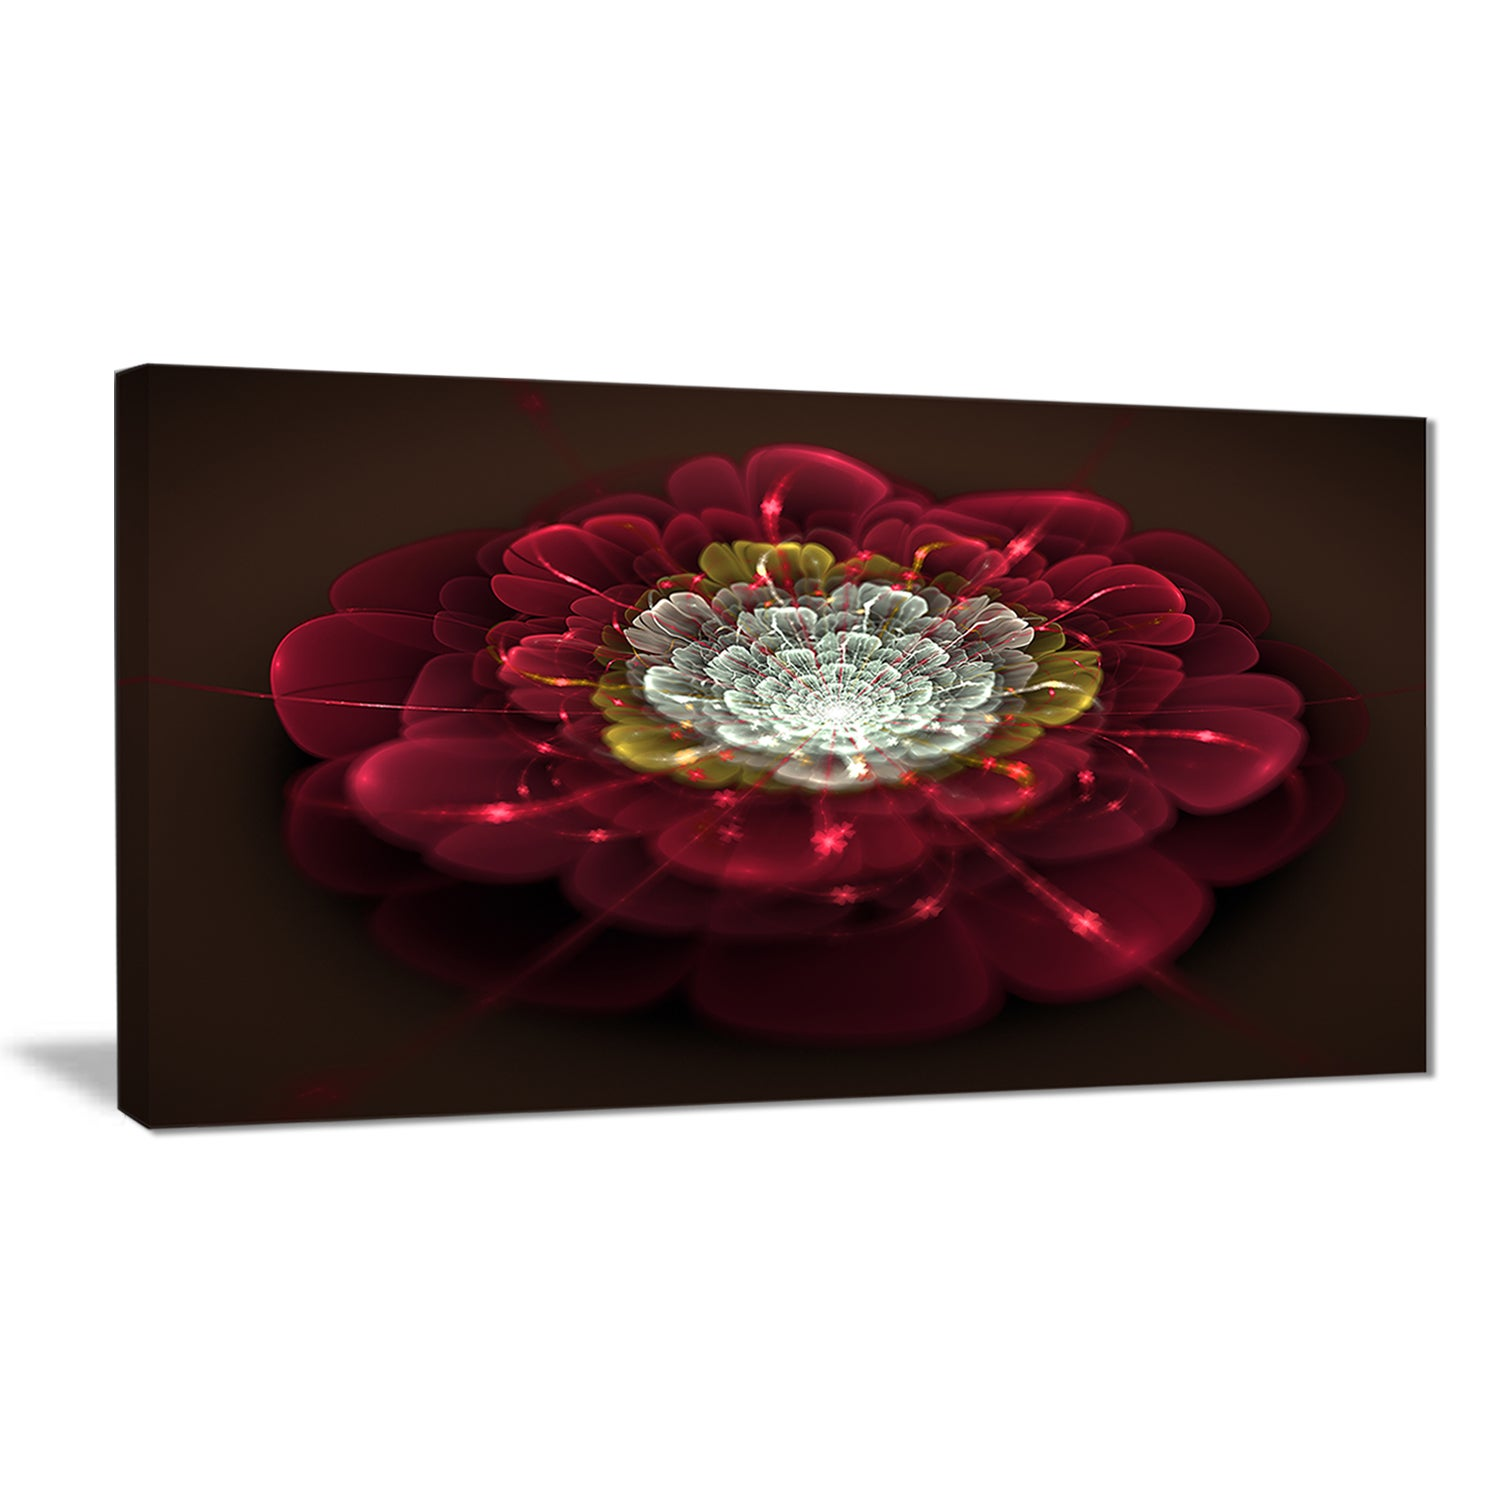 Red-Fractal-Flower-with-White-039-Floral-Digital-Art-Canvas-Small thumbnail 9